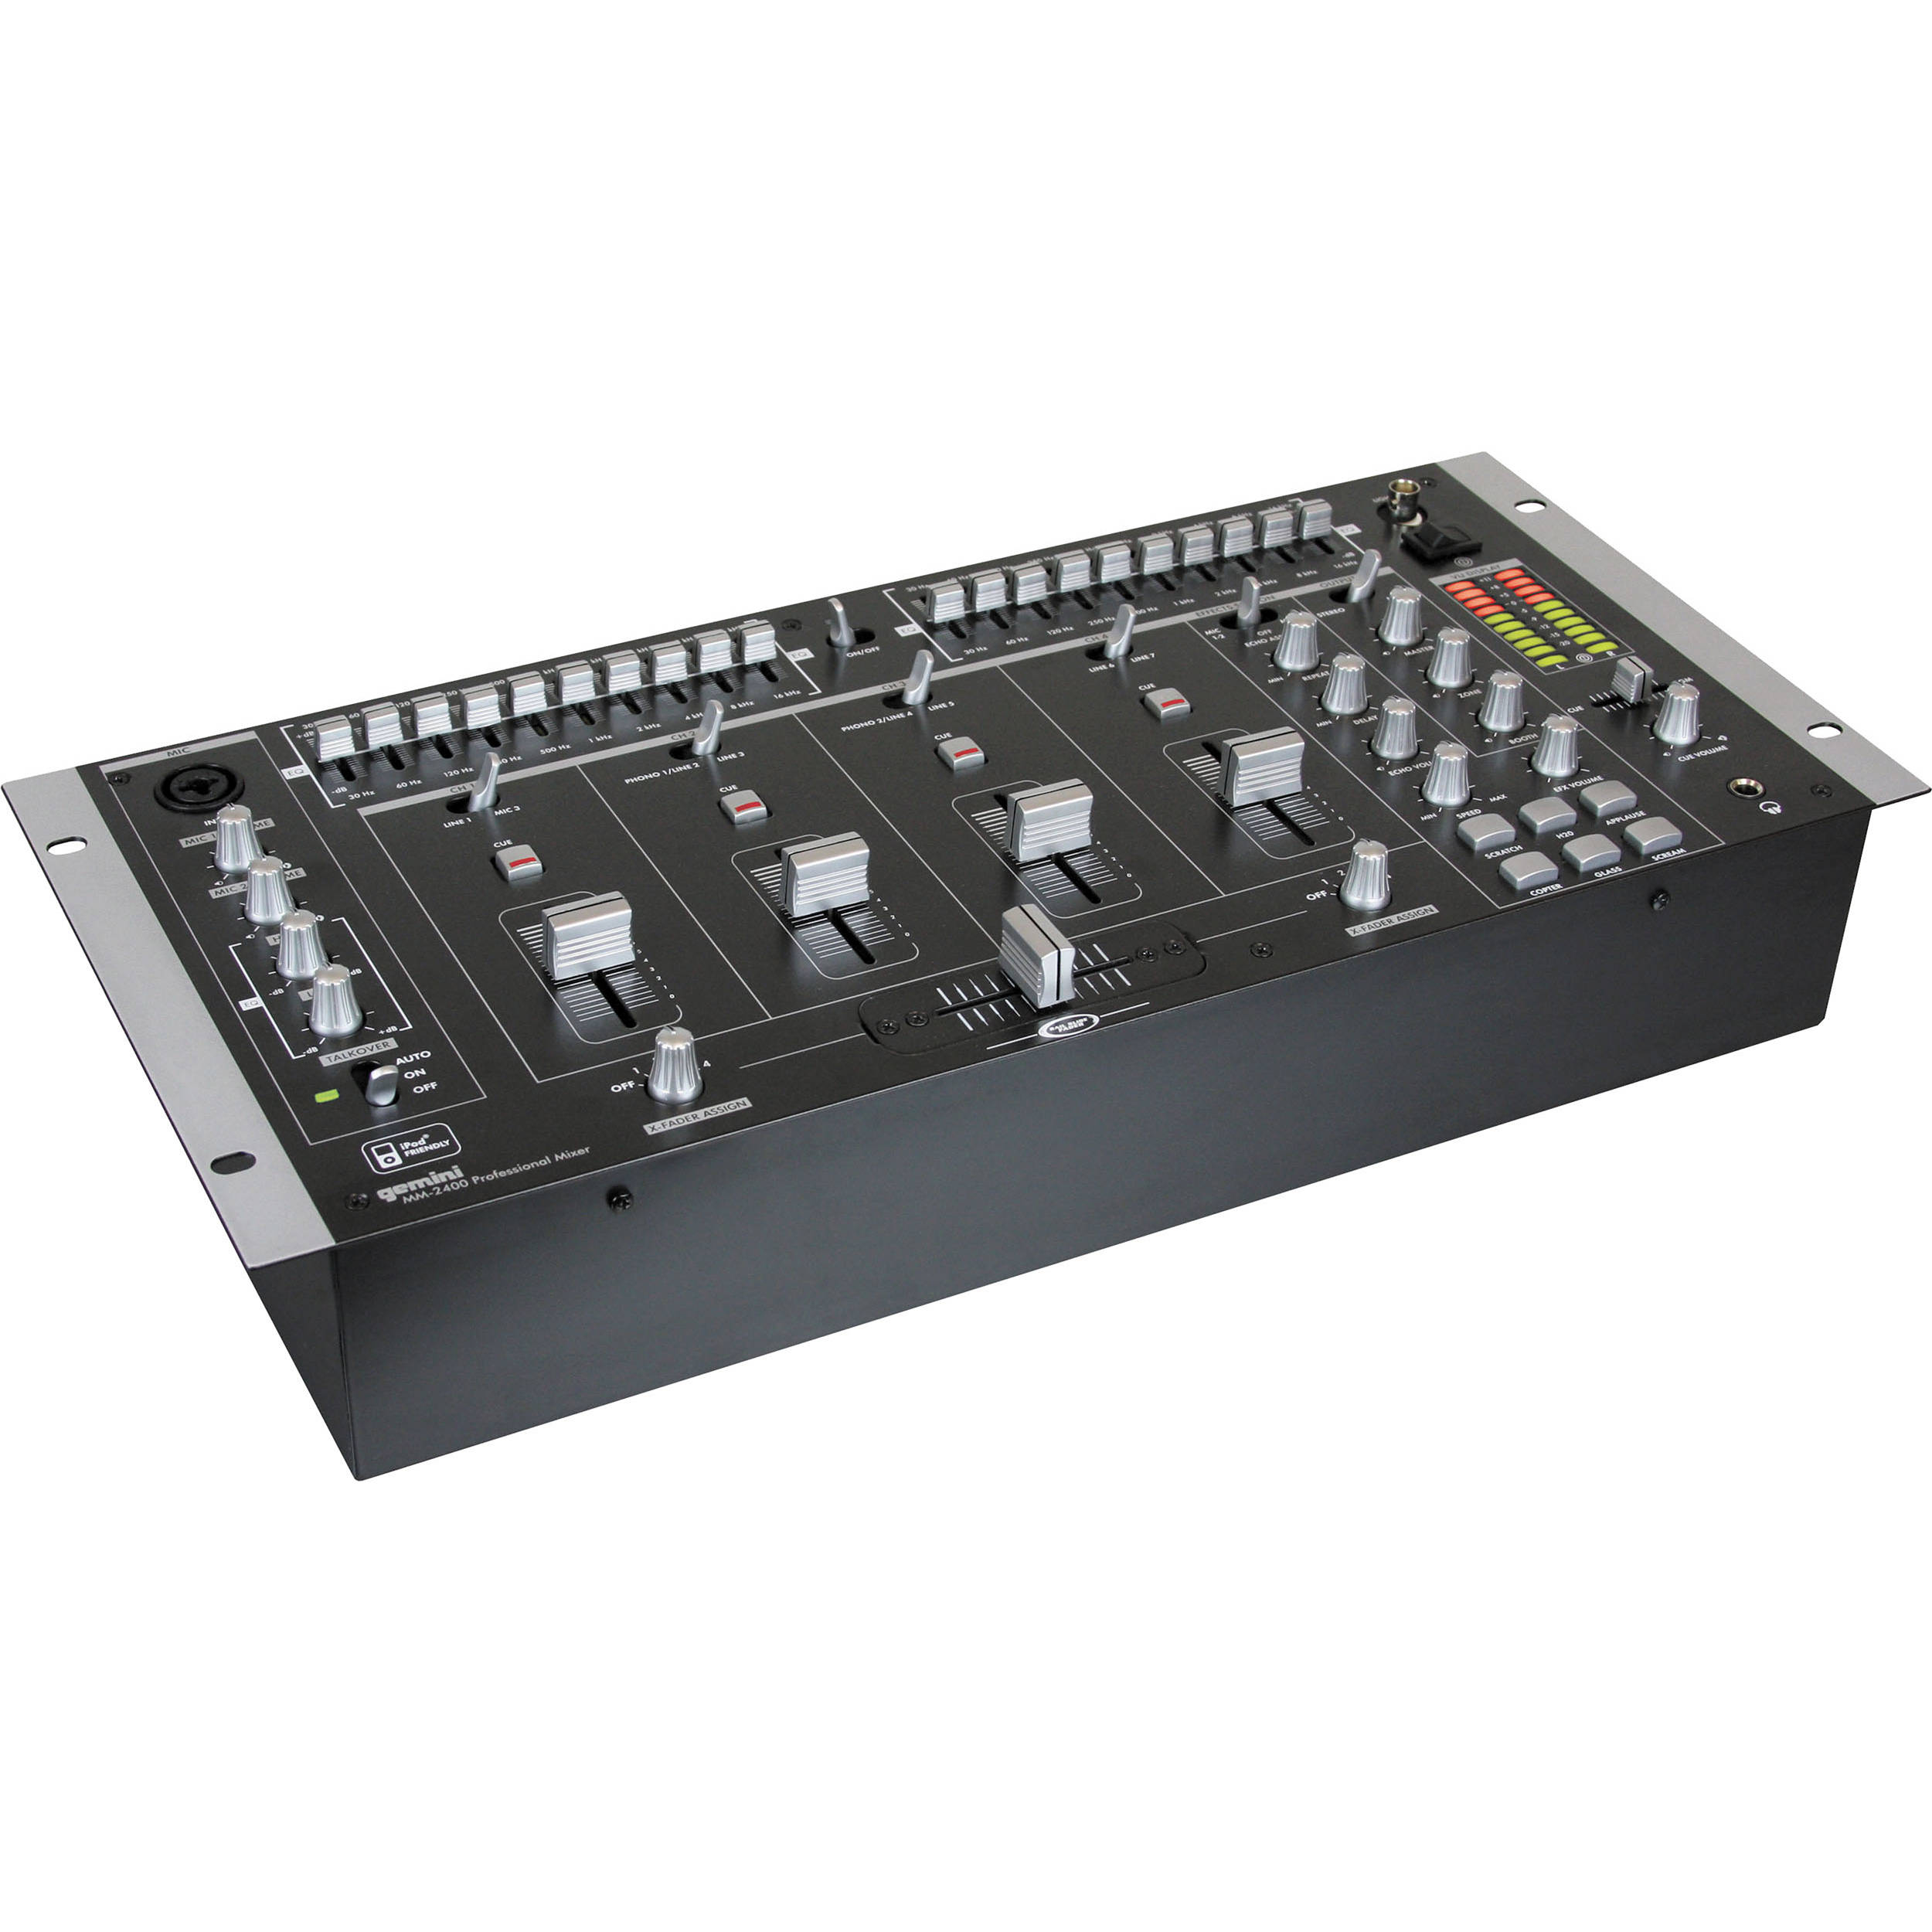 Gemini MM-2400 4-Channel Rack Mounted DJ Mixer with Sound Effects